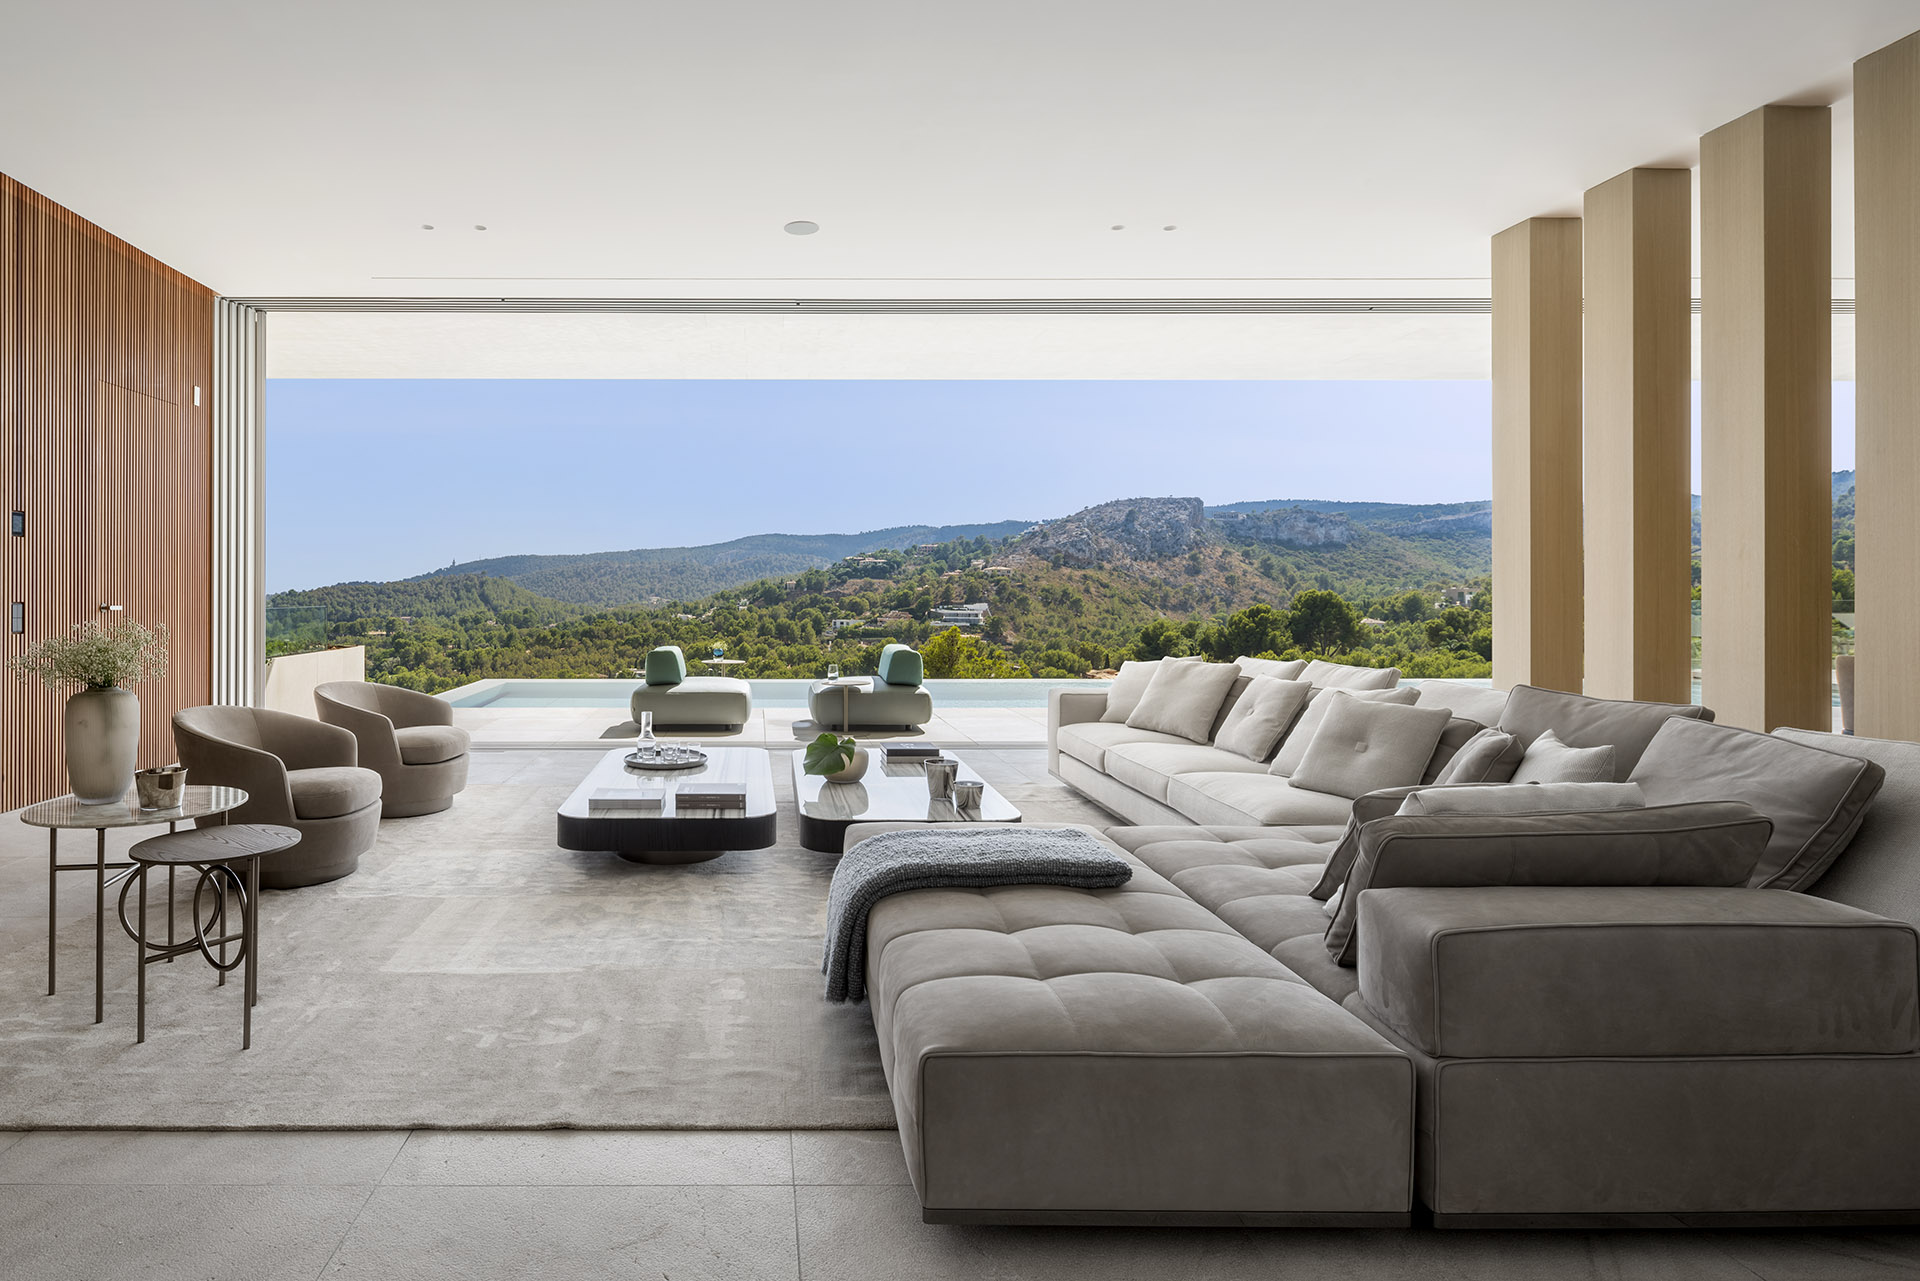 M16 Son Vida | Terraza Balear interior design project in Mallorca 13